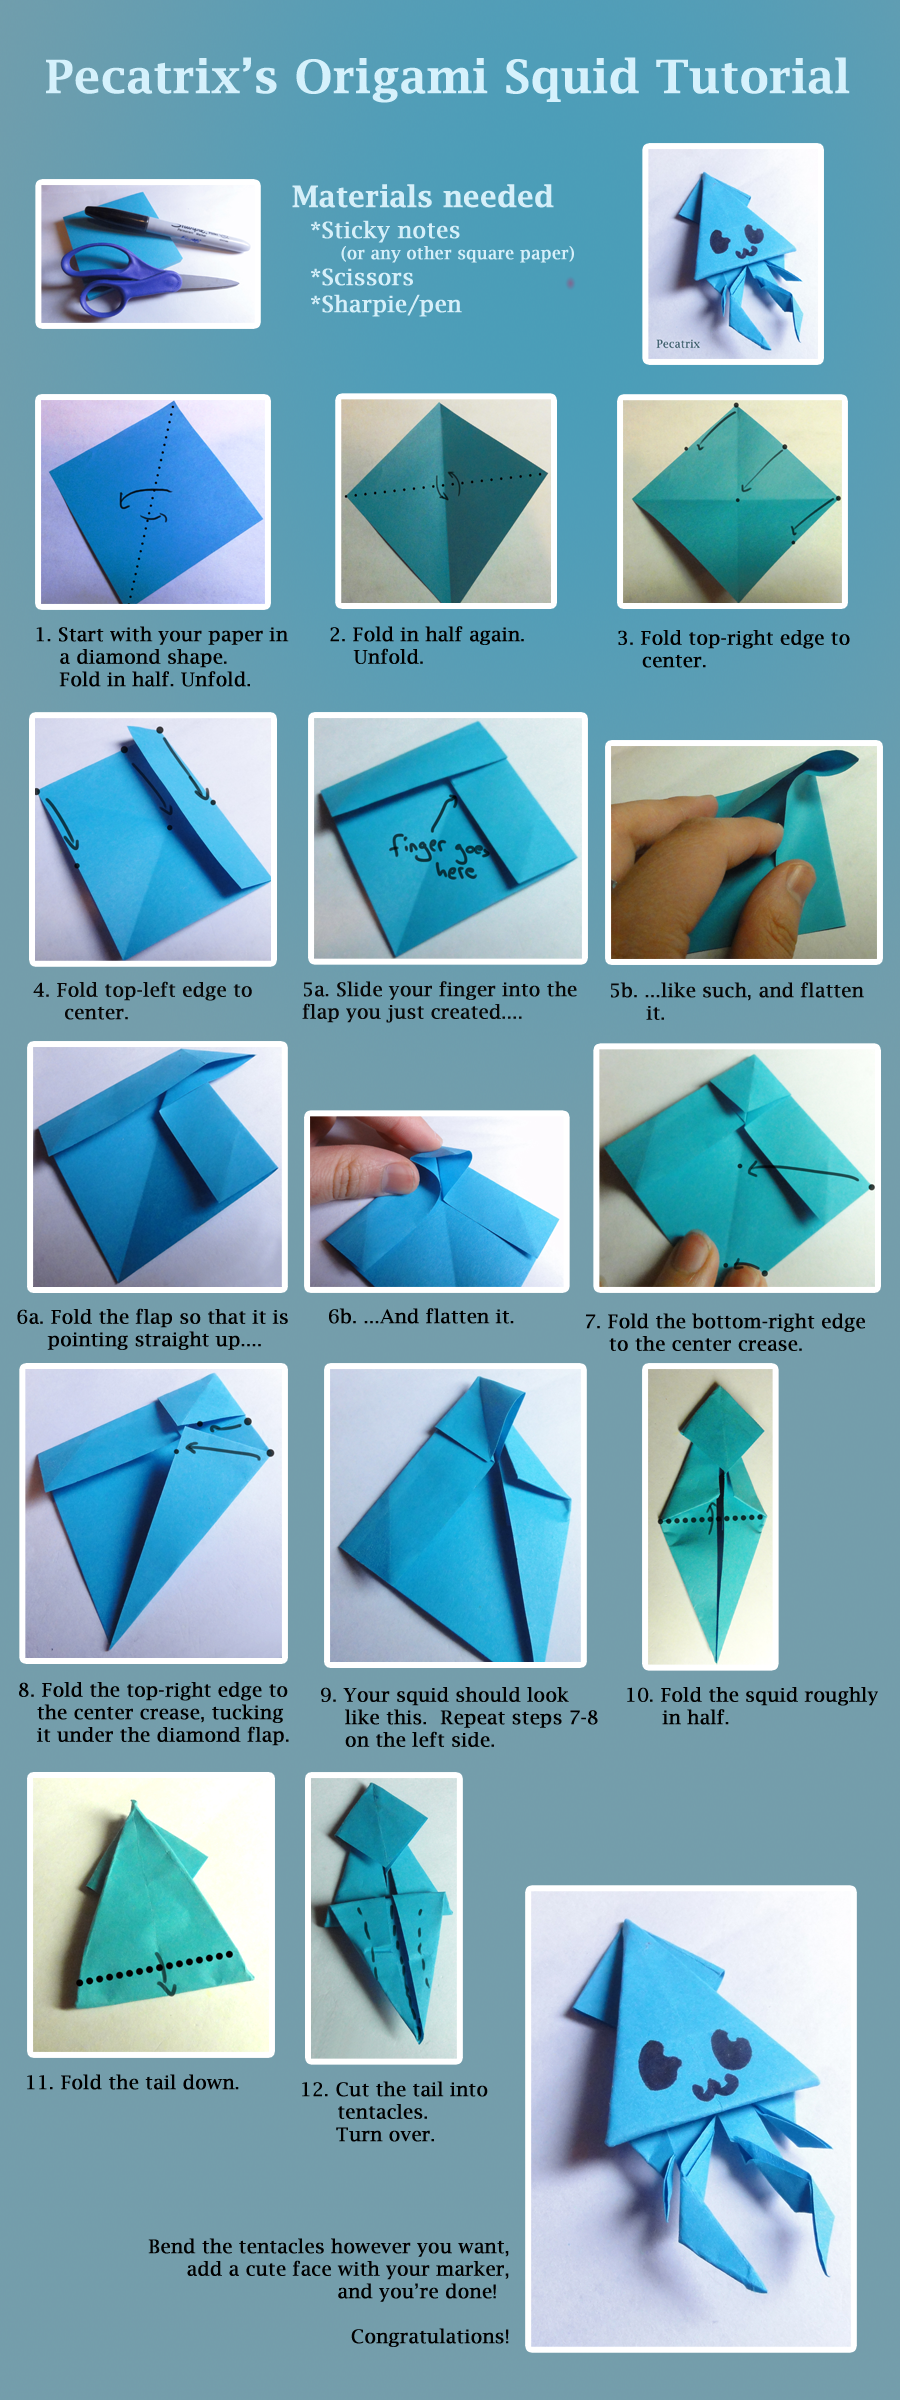 Origami squid tutorial by pecatrix on deviantart for How to make a star with paper step by step